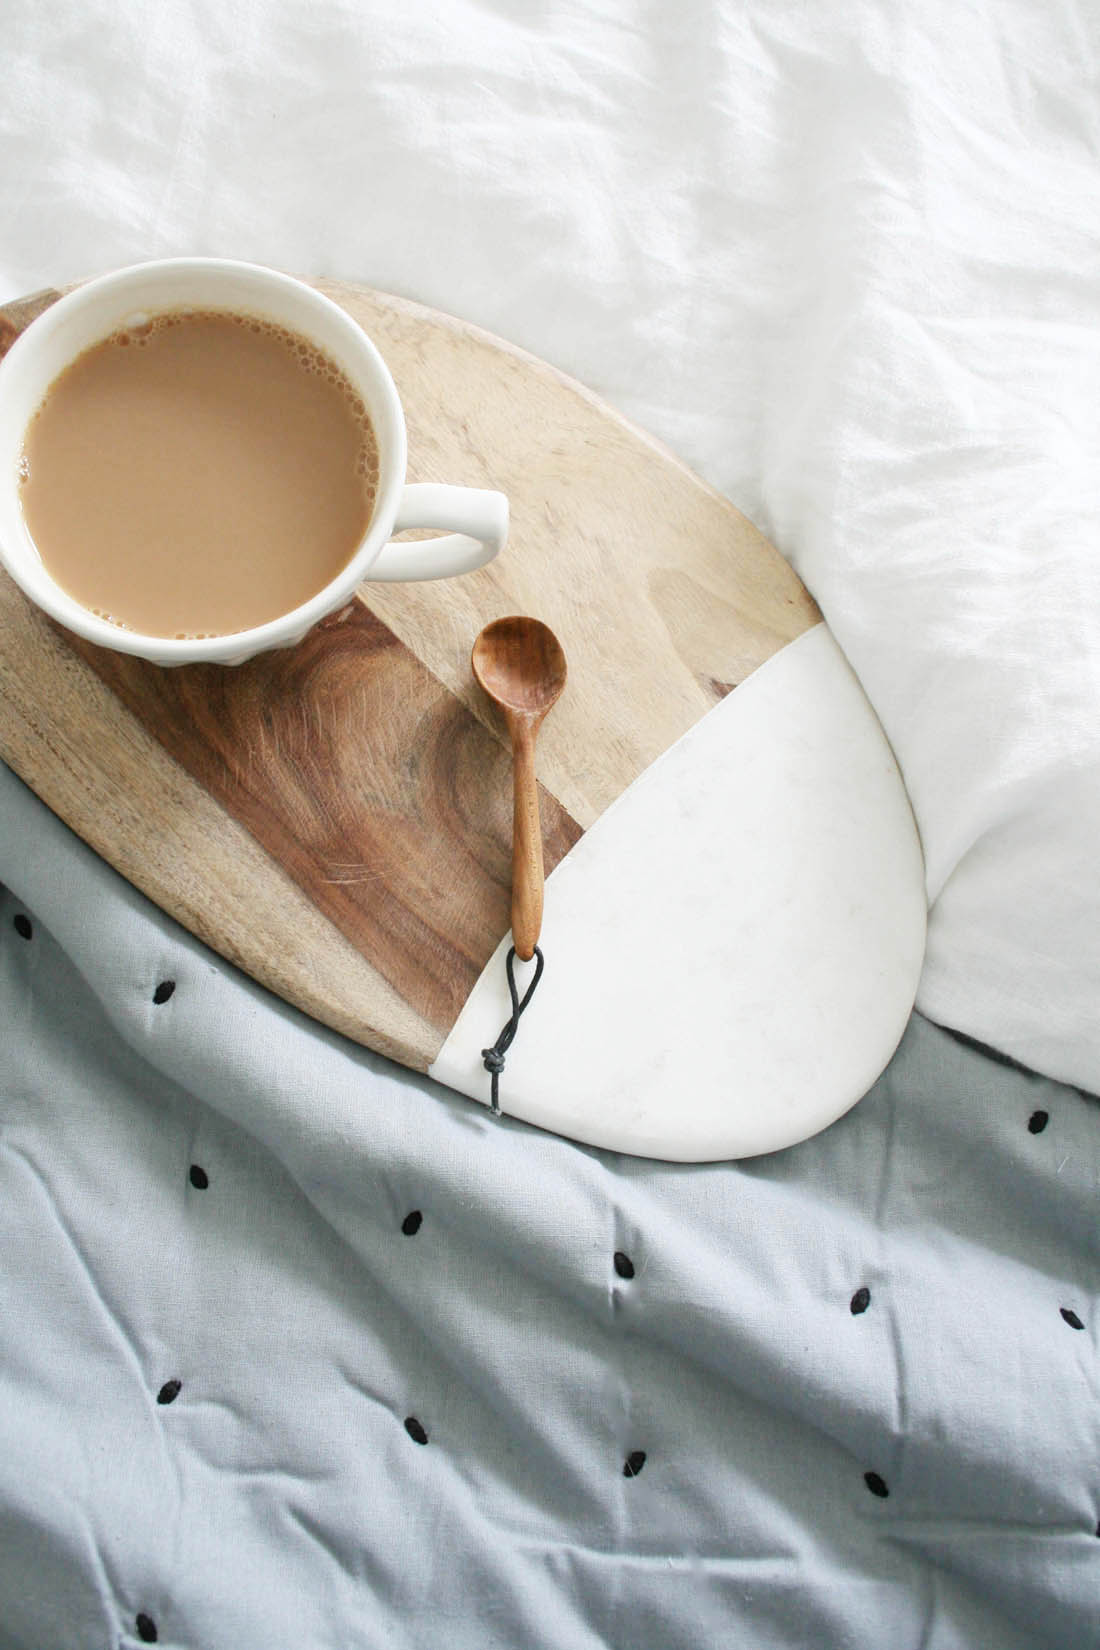 Dwell marble and wood serving board | Bedroom interior | Tea in bed | Apartment Apothecary